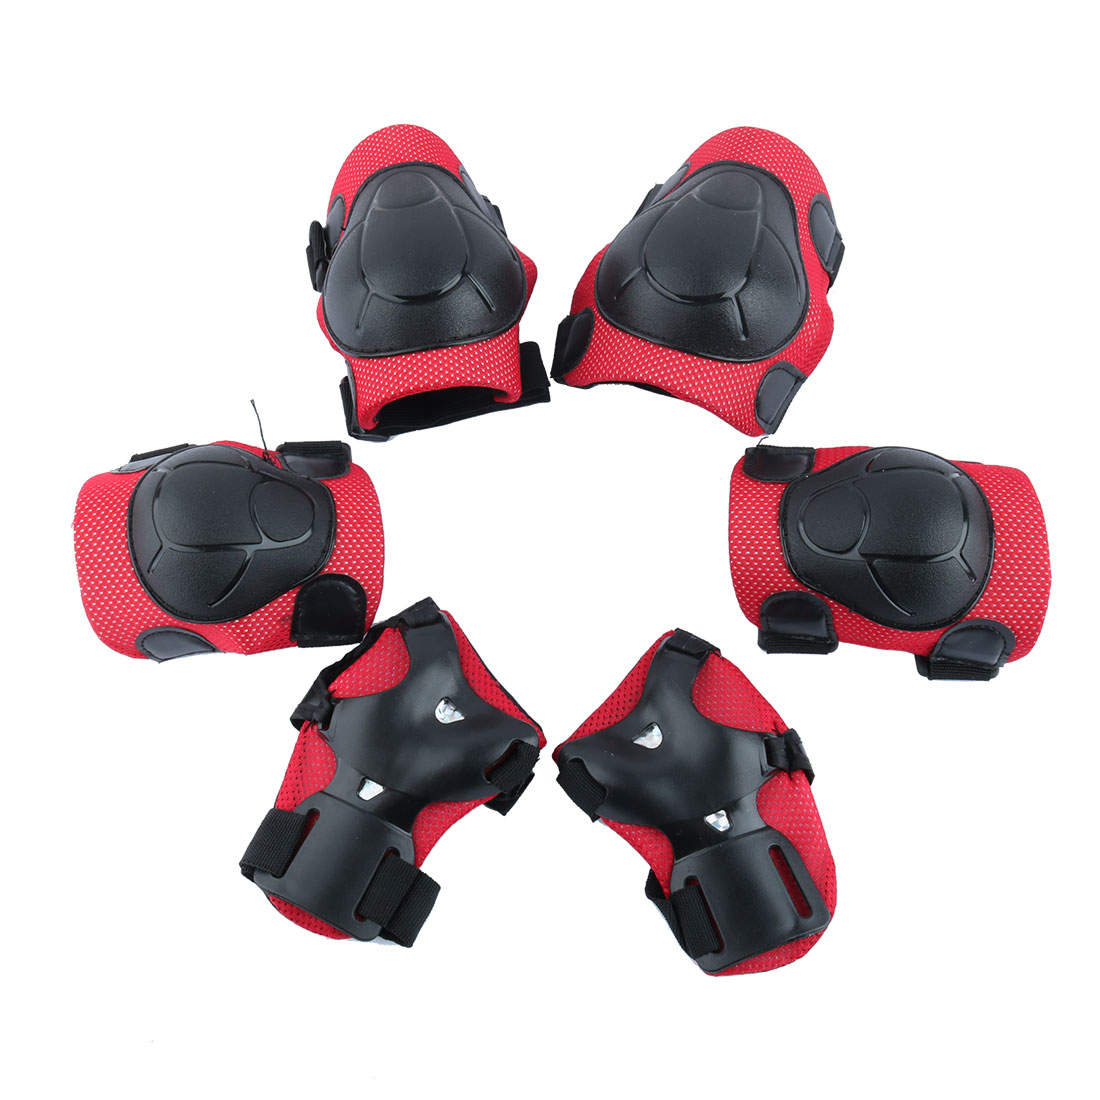 6Pcs Multi-sports Protective Gear Set Elbow Pads Wrist Guard Knee Pads For Children